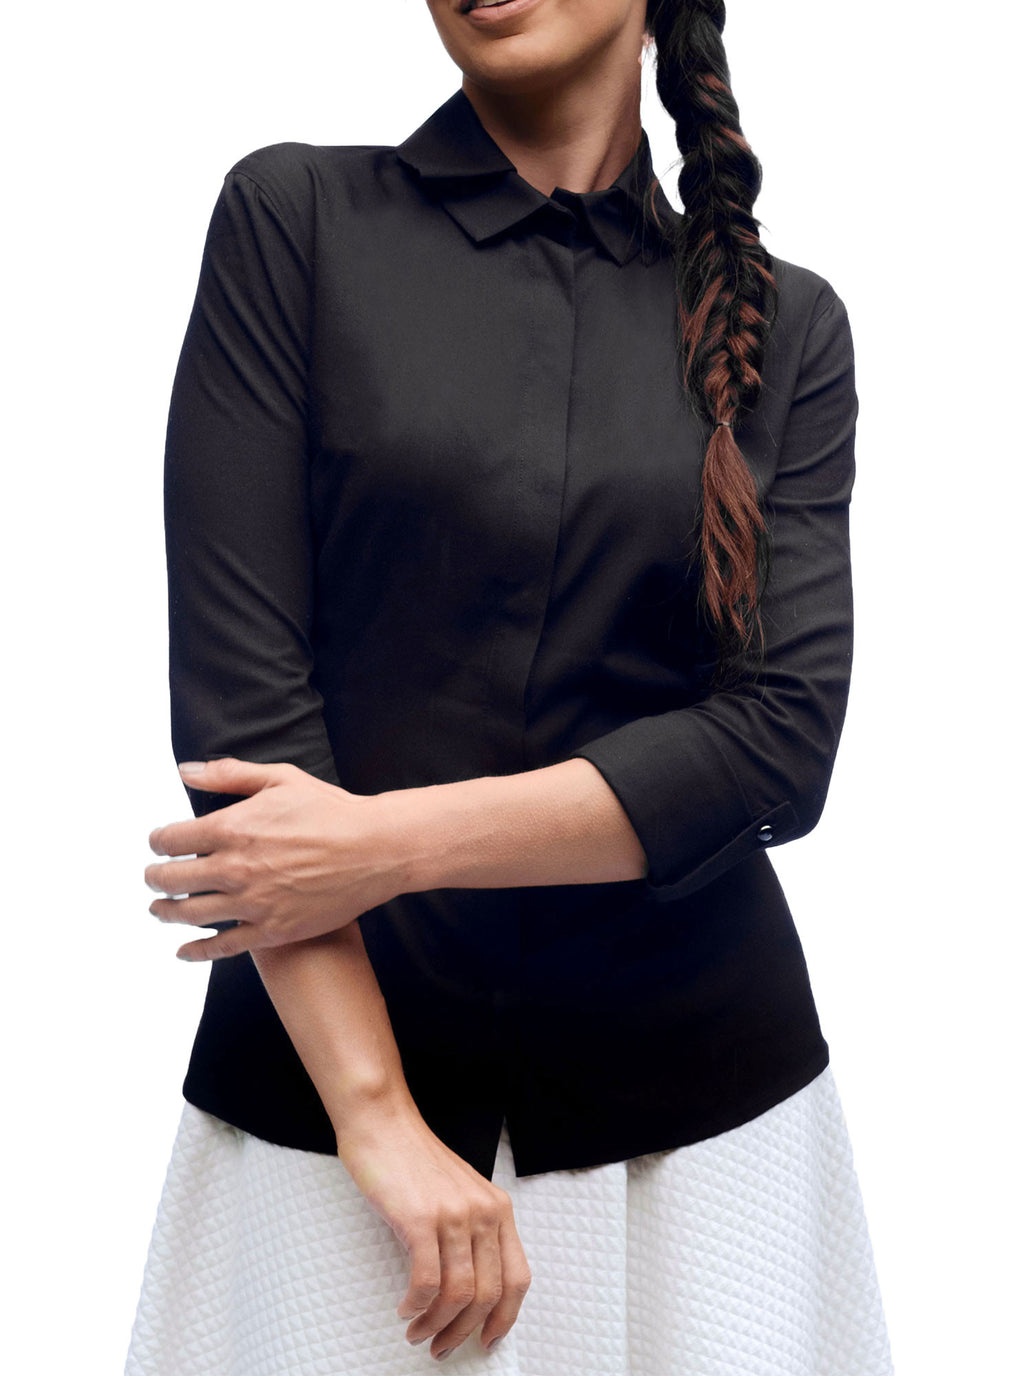 ODER Black Bamboo Shirt with Adjustable Sleeves